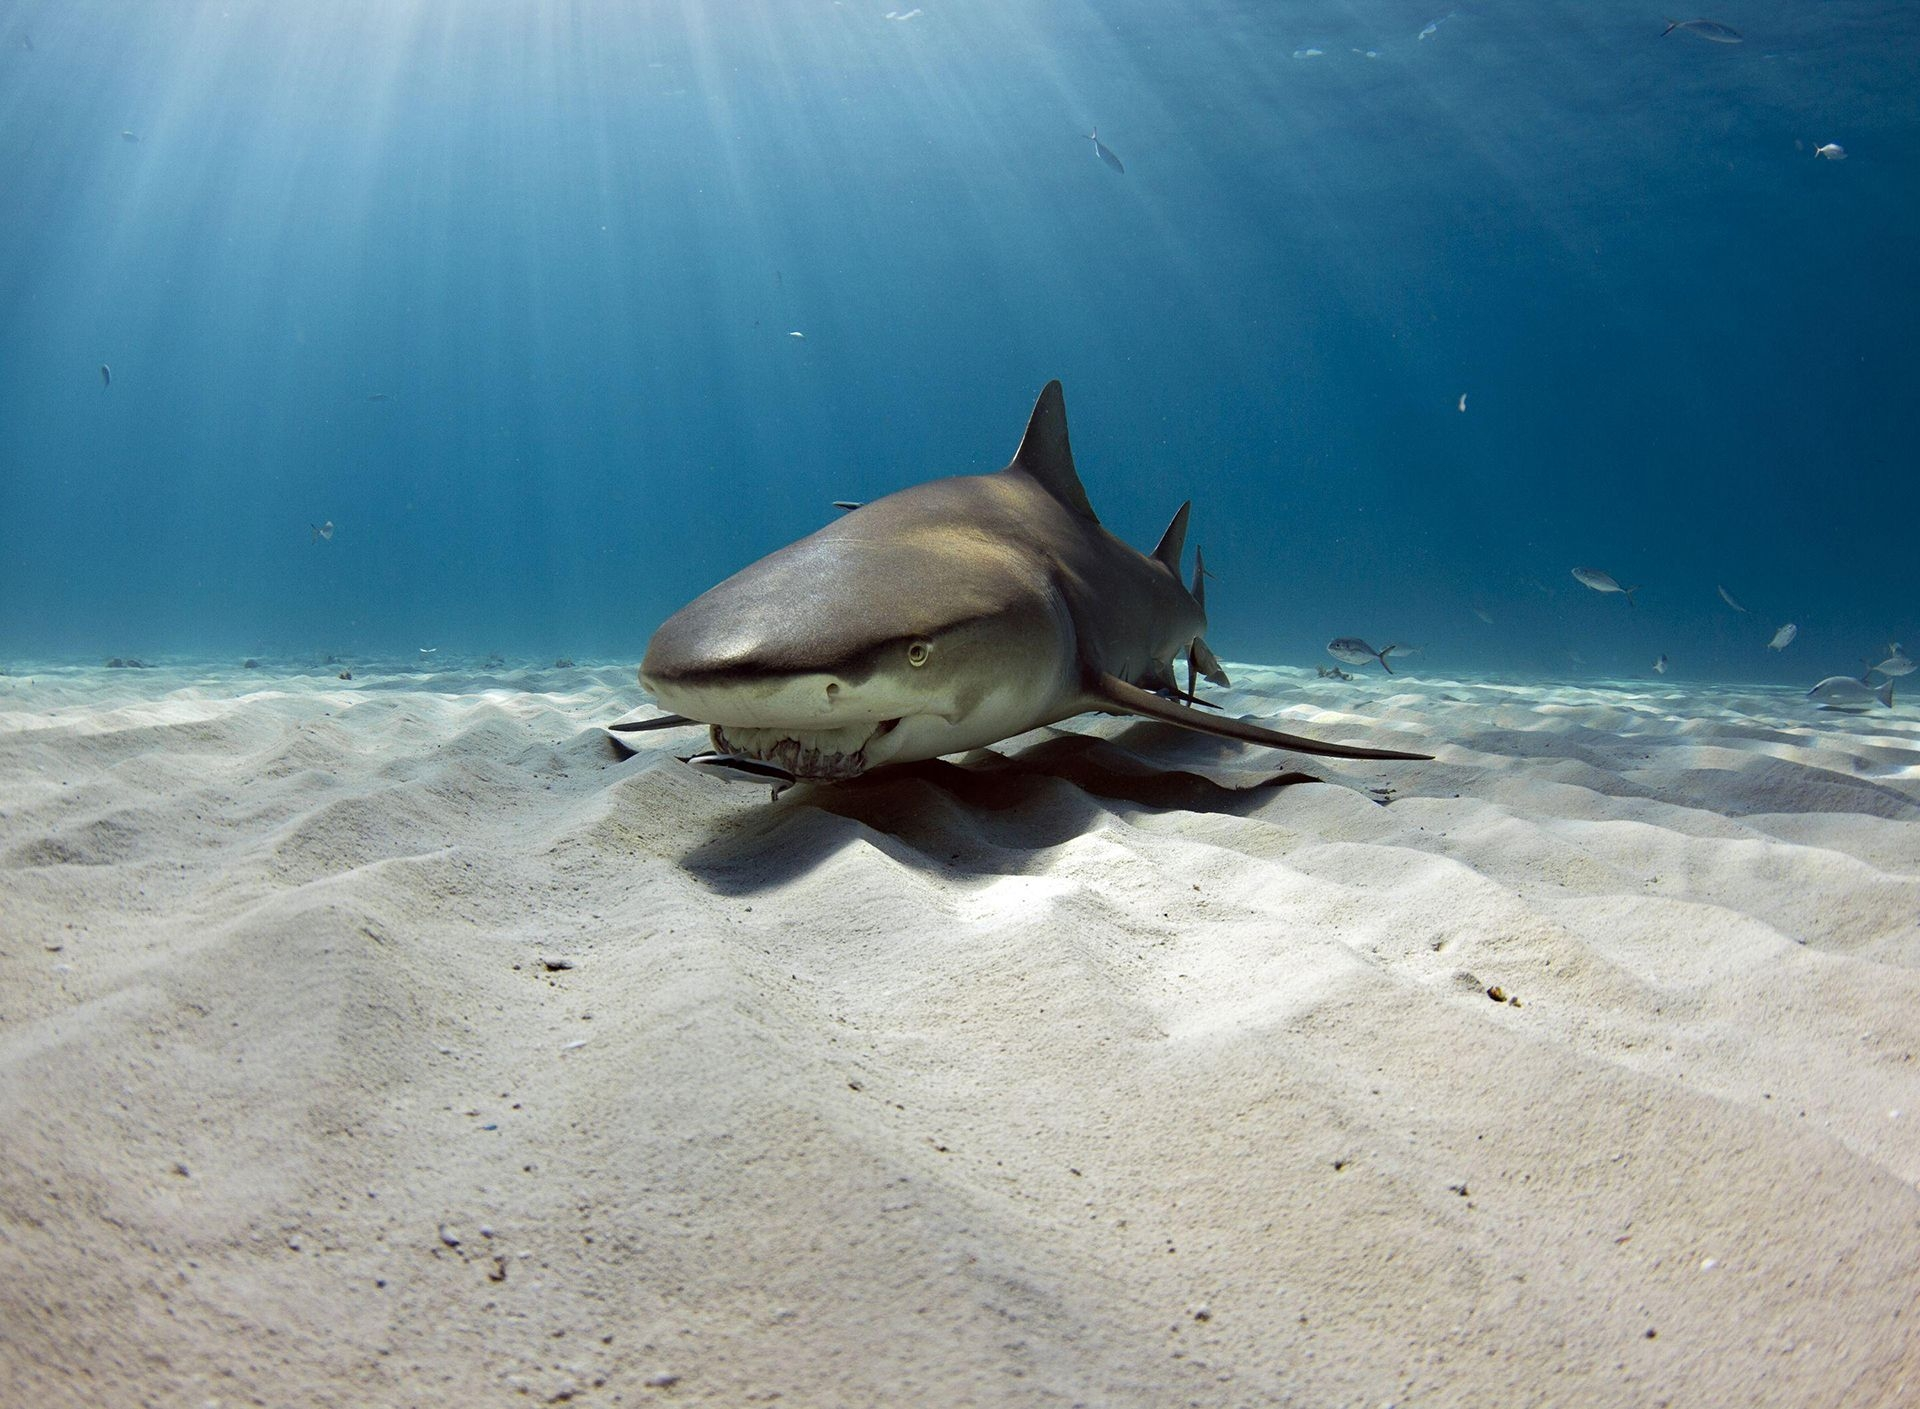 Photograph by Raul Boesel, National Geographic Your Shot